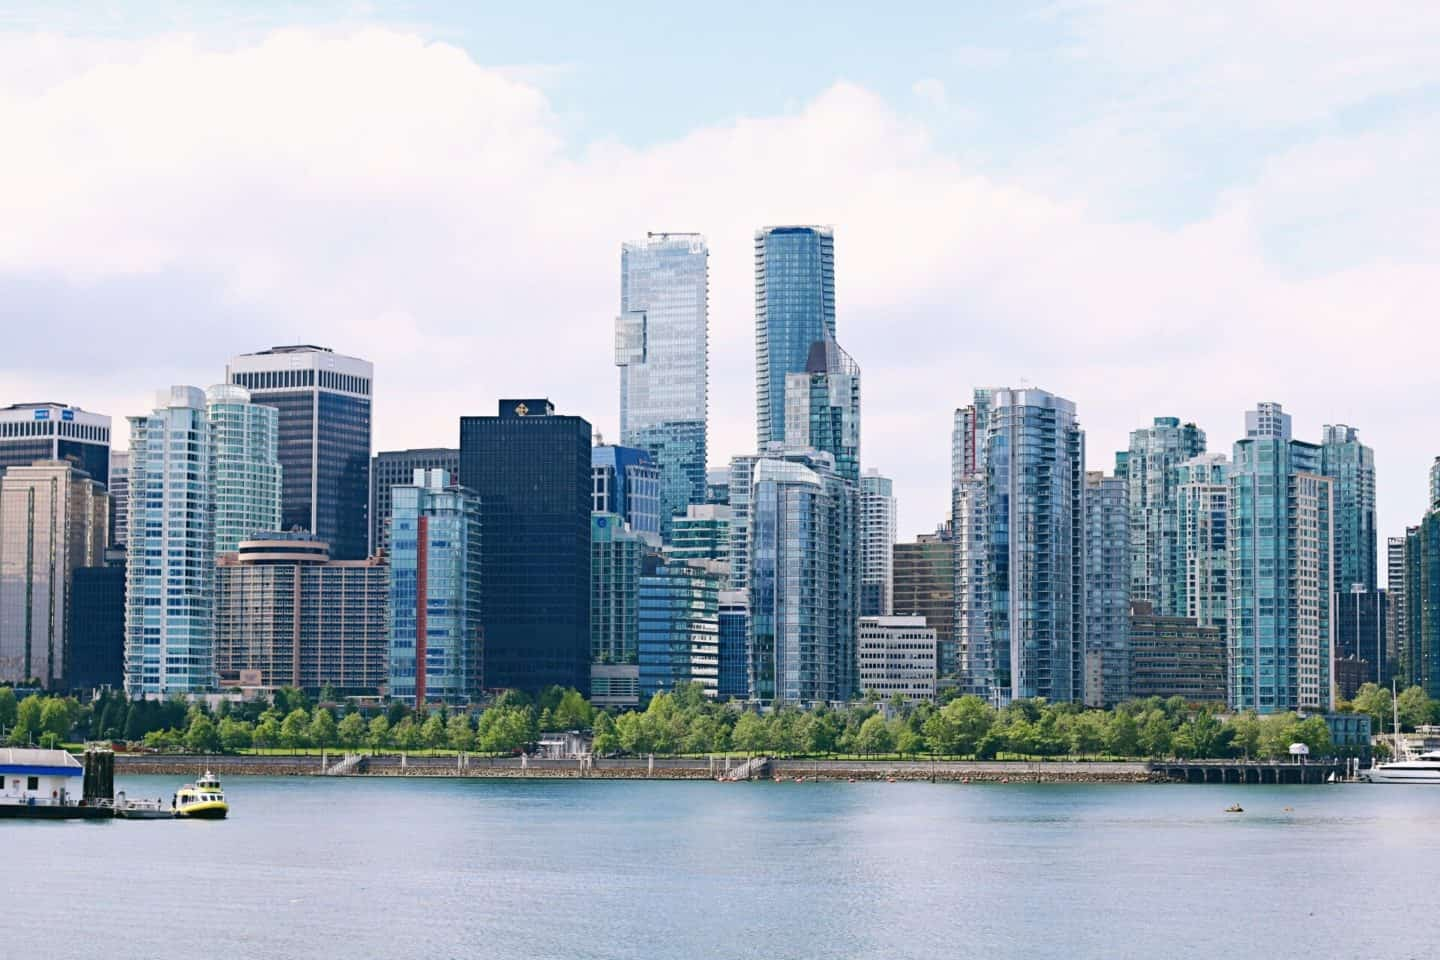 Vancouver skyline view from Stanley Park Seawall in Vancouver, British Columbia